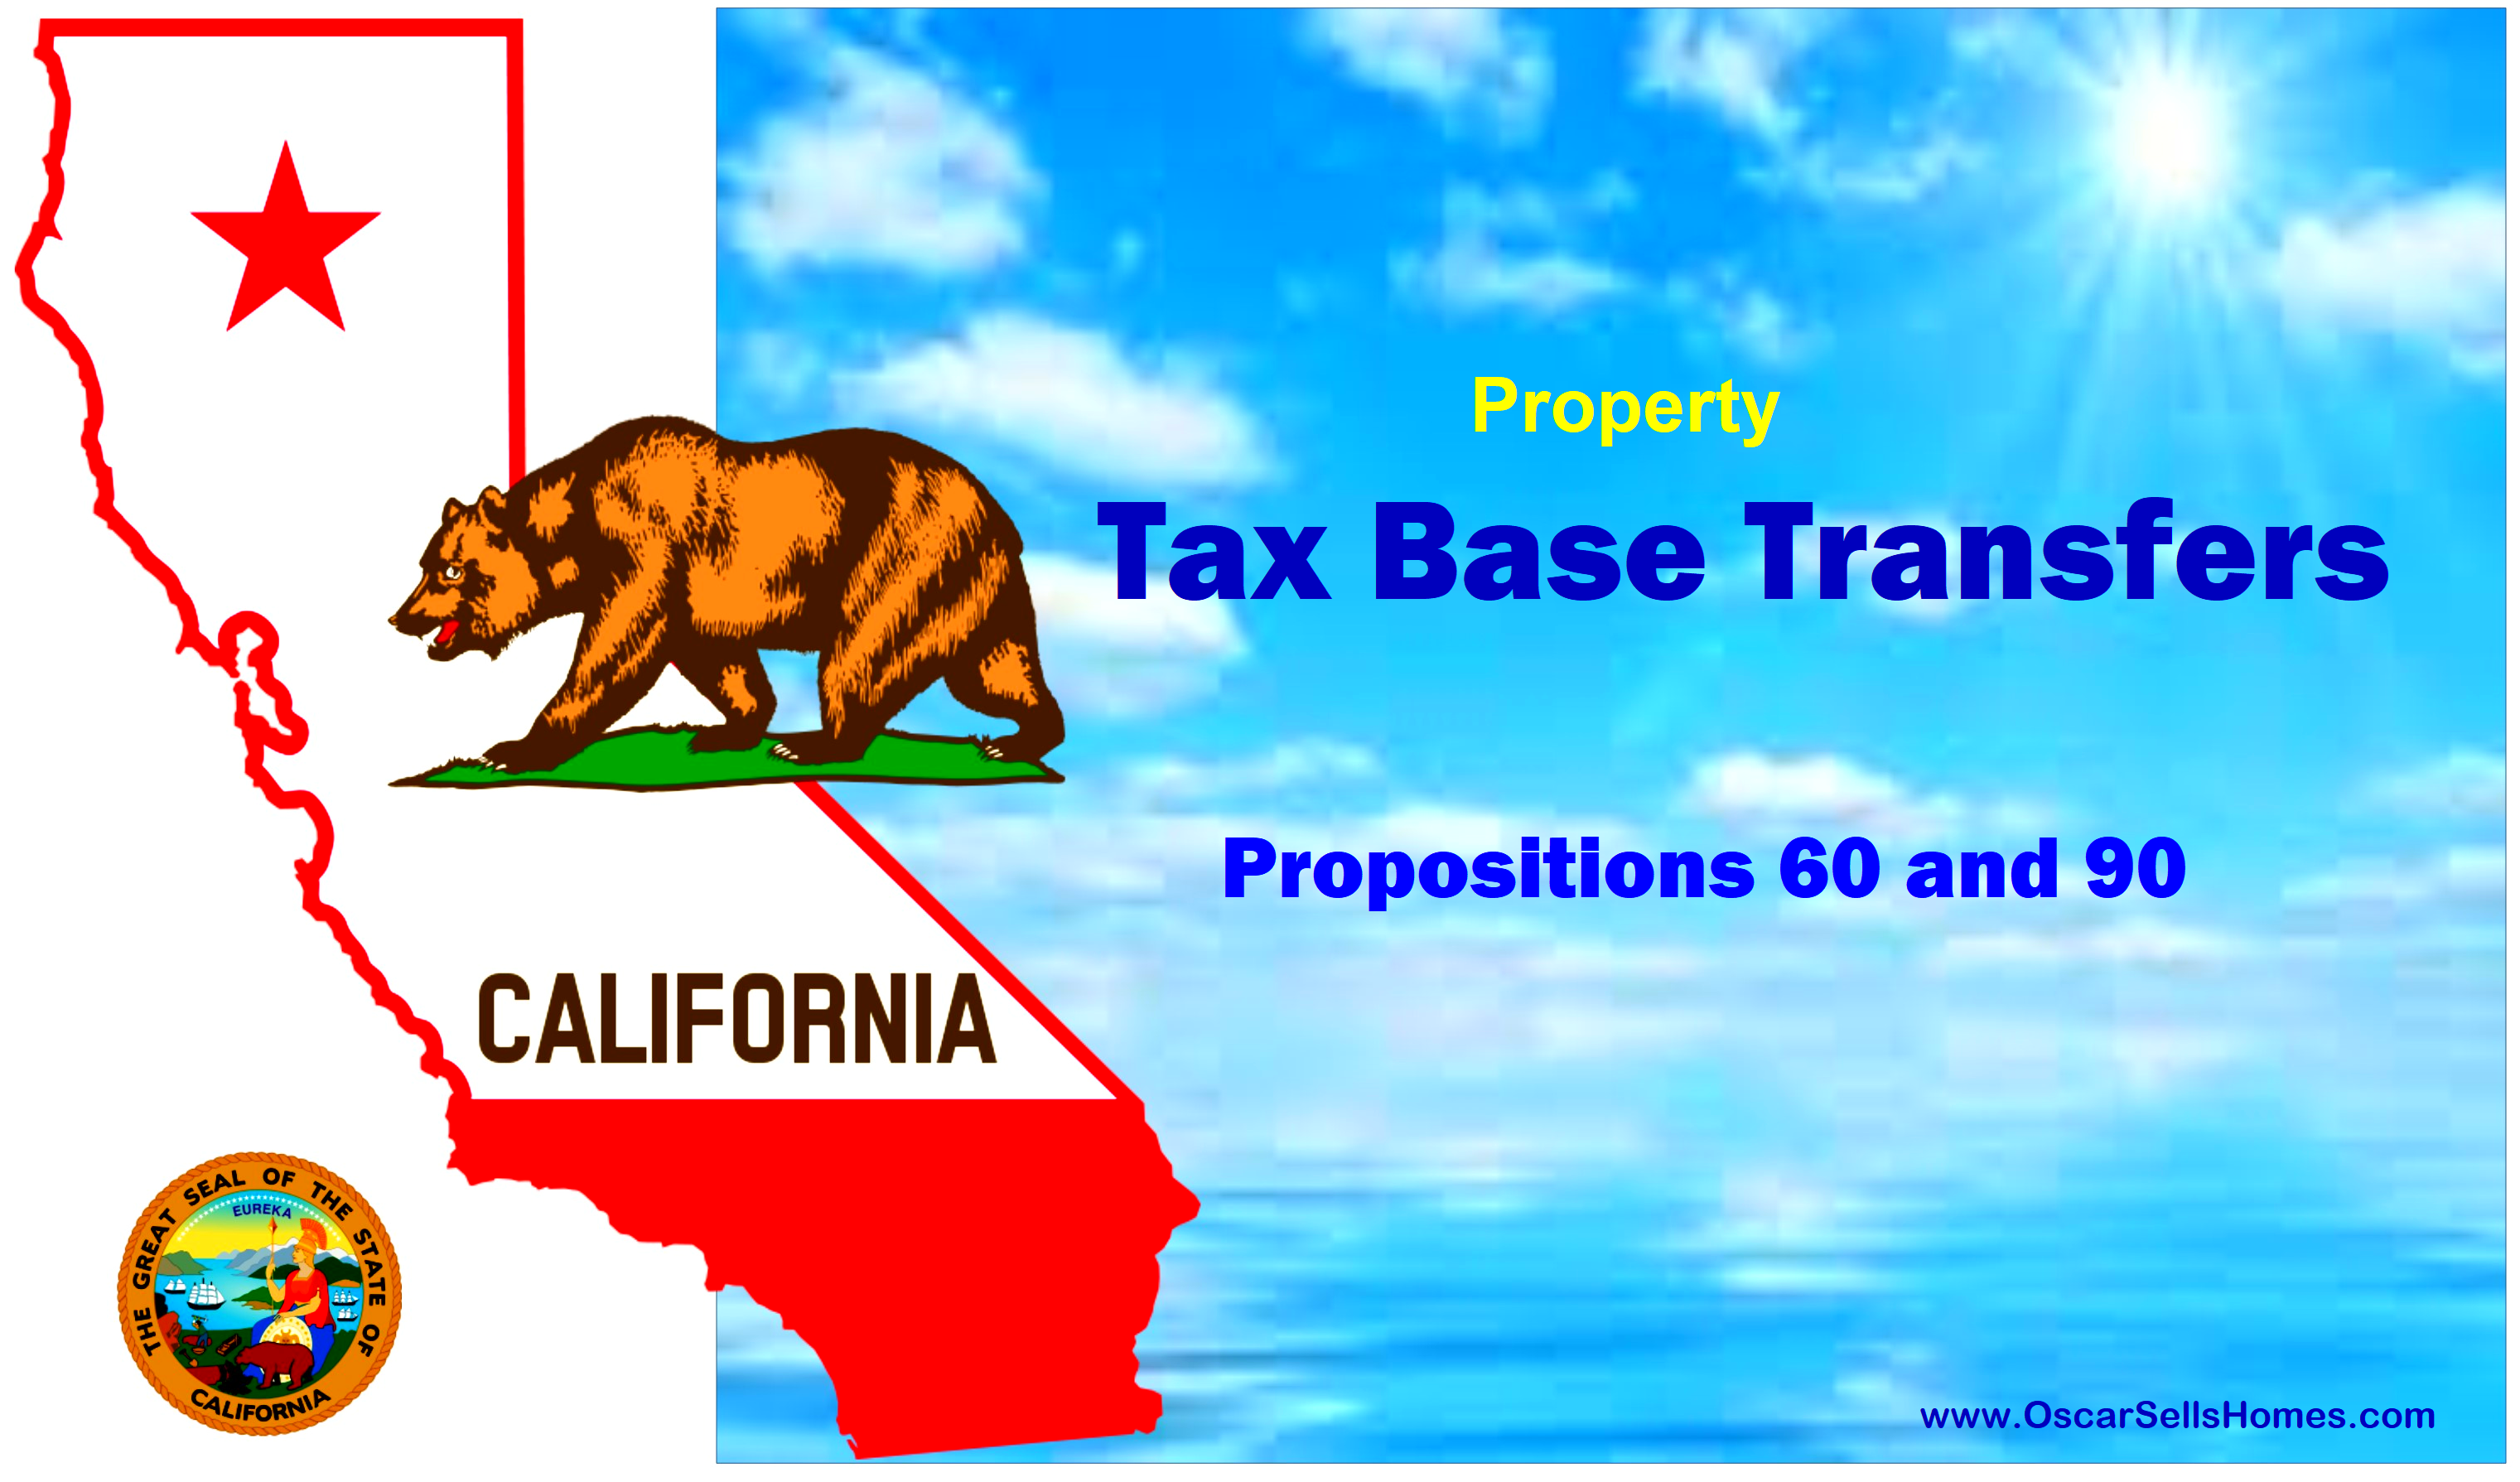 Tax Base Transfers - CA Propositions 60 and 90 : Oscar Castillo - Broker Associate (858) 775-1057